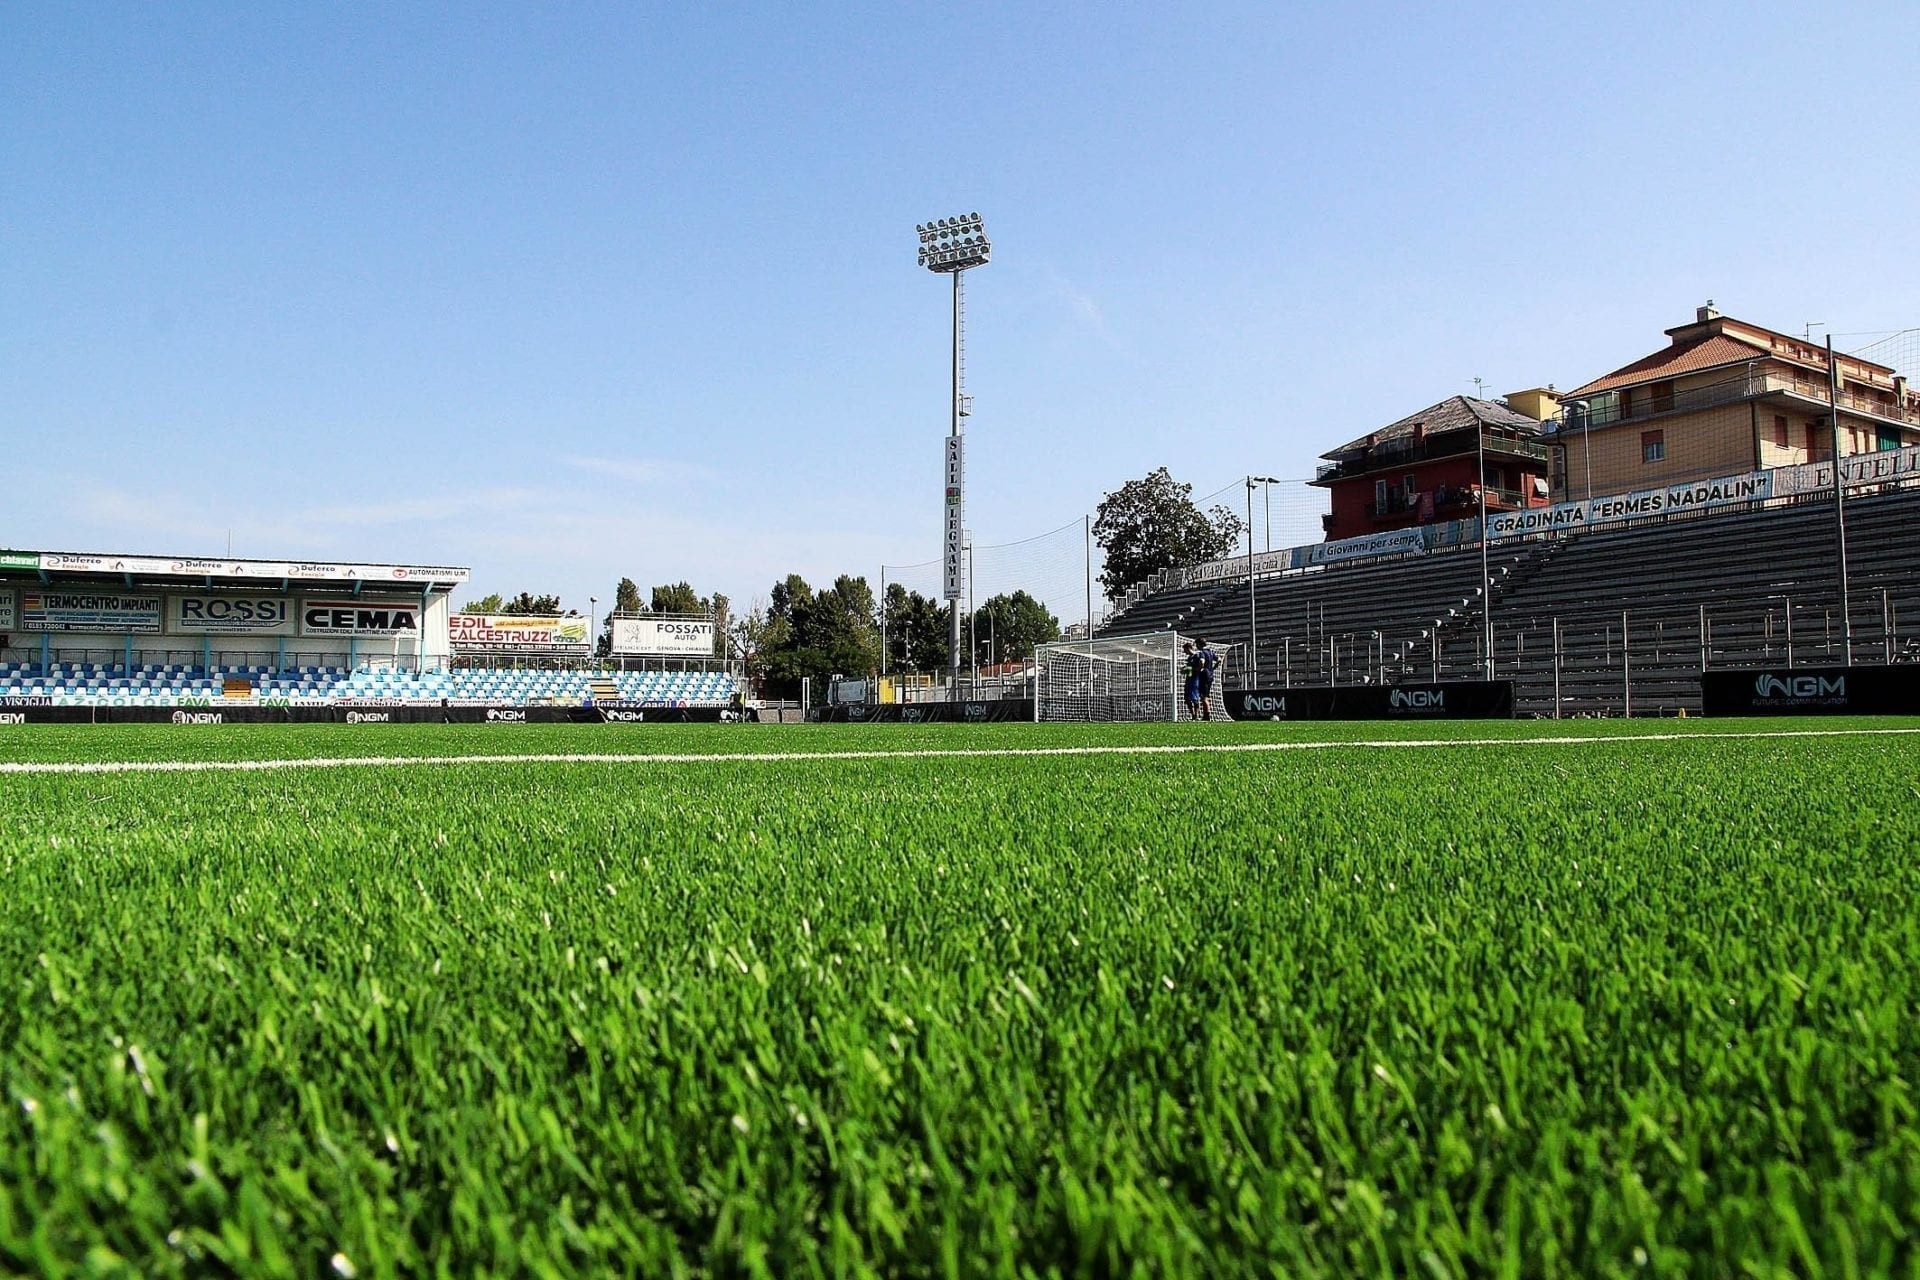 The best synthetic turf in Serie B